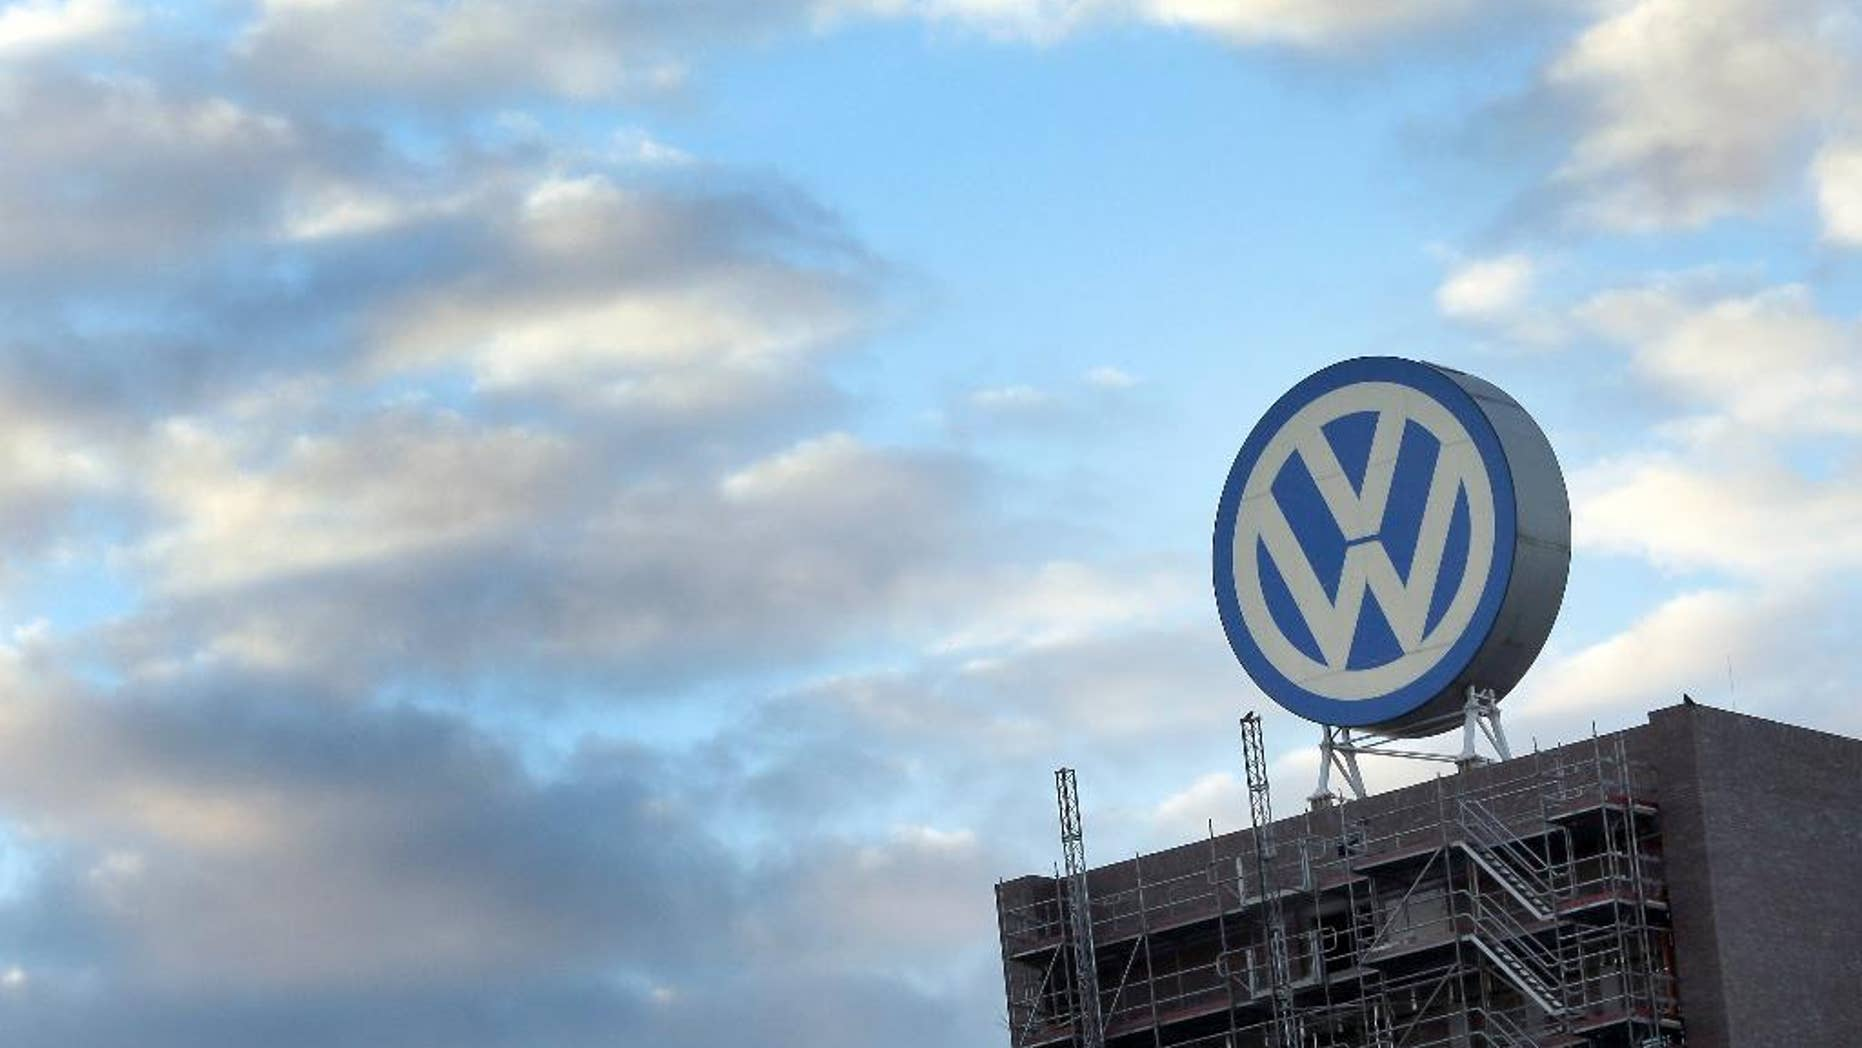 FILE - In this Sept. 26, 2015 file photo a giant logo of the German car manufacturer Volkswagen is pictured on top of a company's factory building in Wolfsburg, Germany. Volkswagen says it has reached an agreement with two suppliers in a dispute that forced the company to suspend production of some models in Germany. News agency dpa reported Tuesday Aug. 23, 2016  that the automaker said the suppliers will quickly resume deliveries. No details were released.   (AP Photo/Michael Sohn, file)